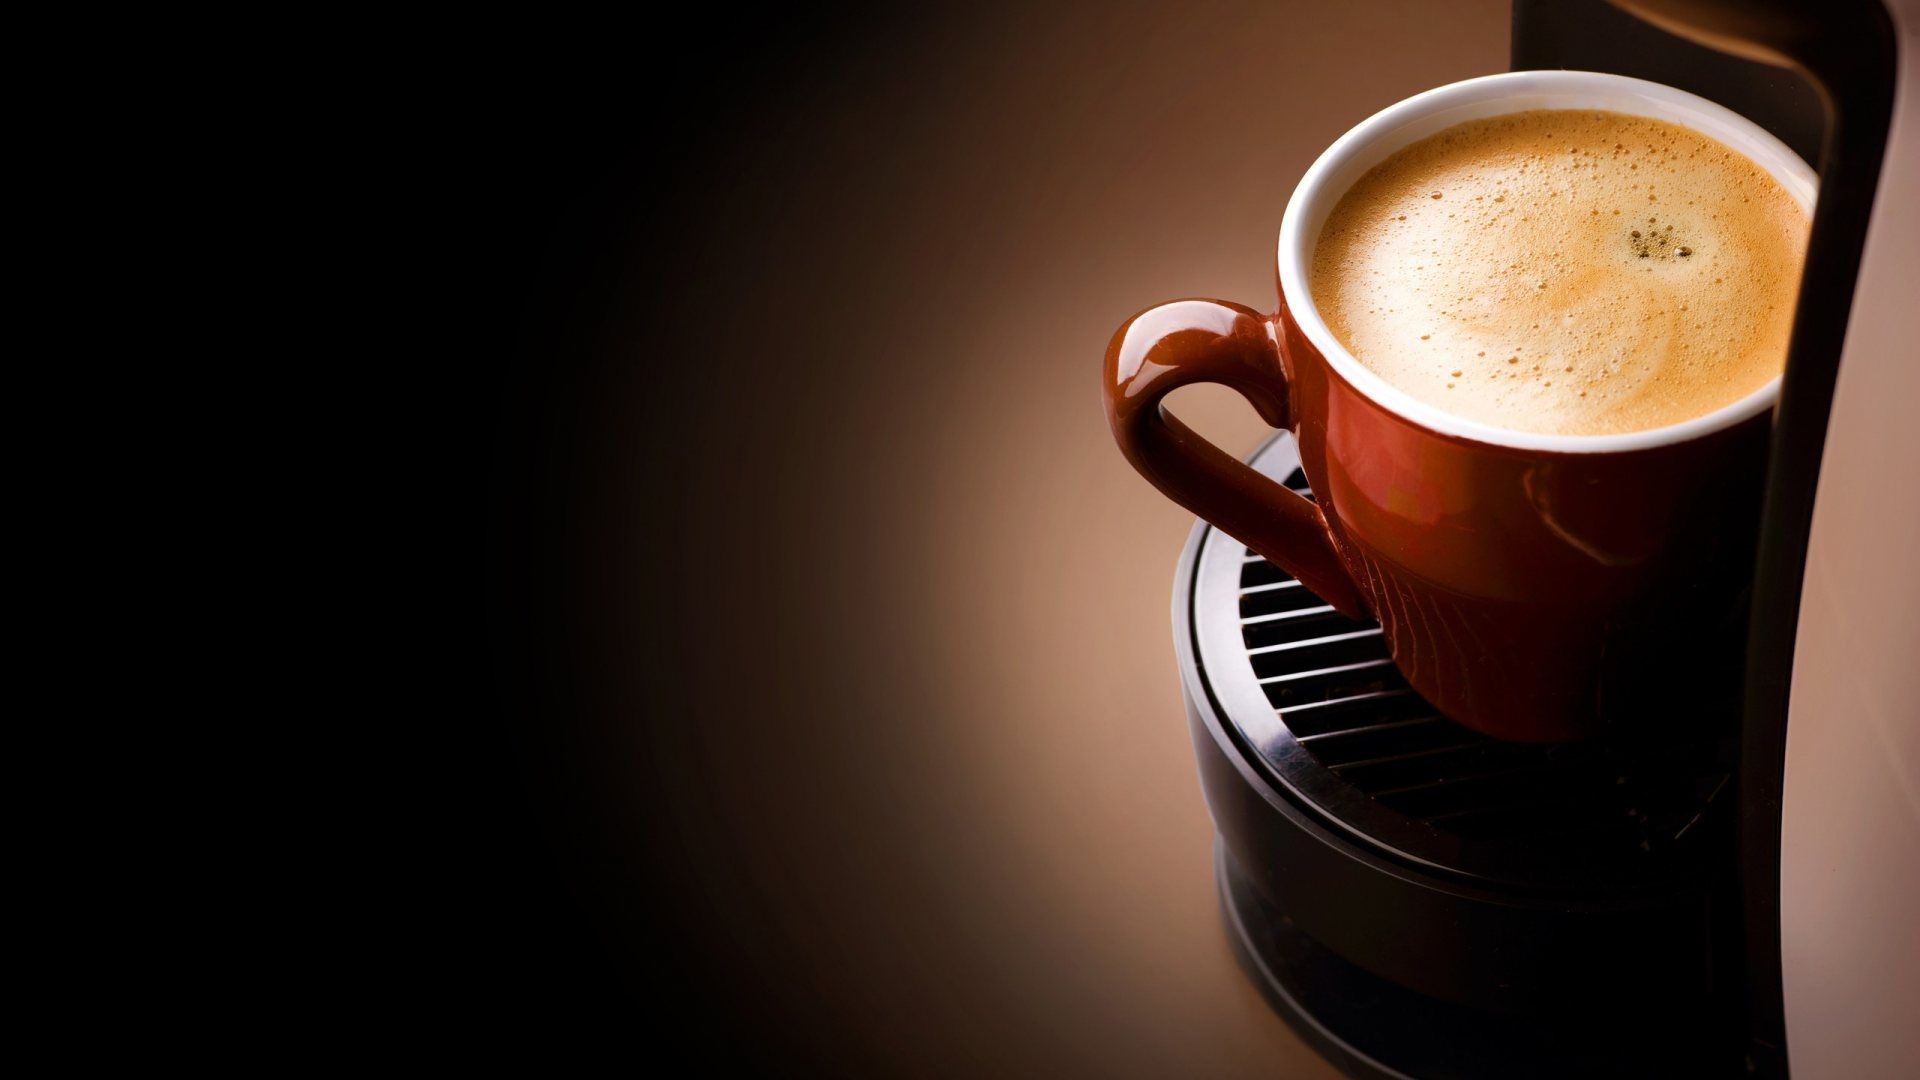 New Cool Coffee Wallpaper Cool Coffee Wallpaper Download New